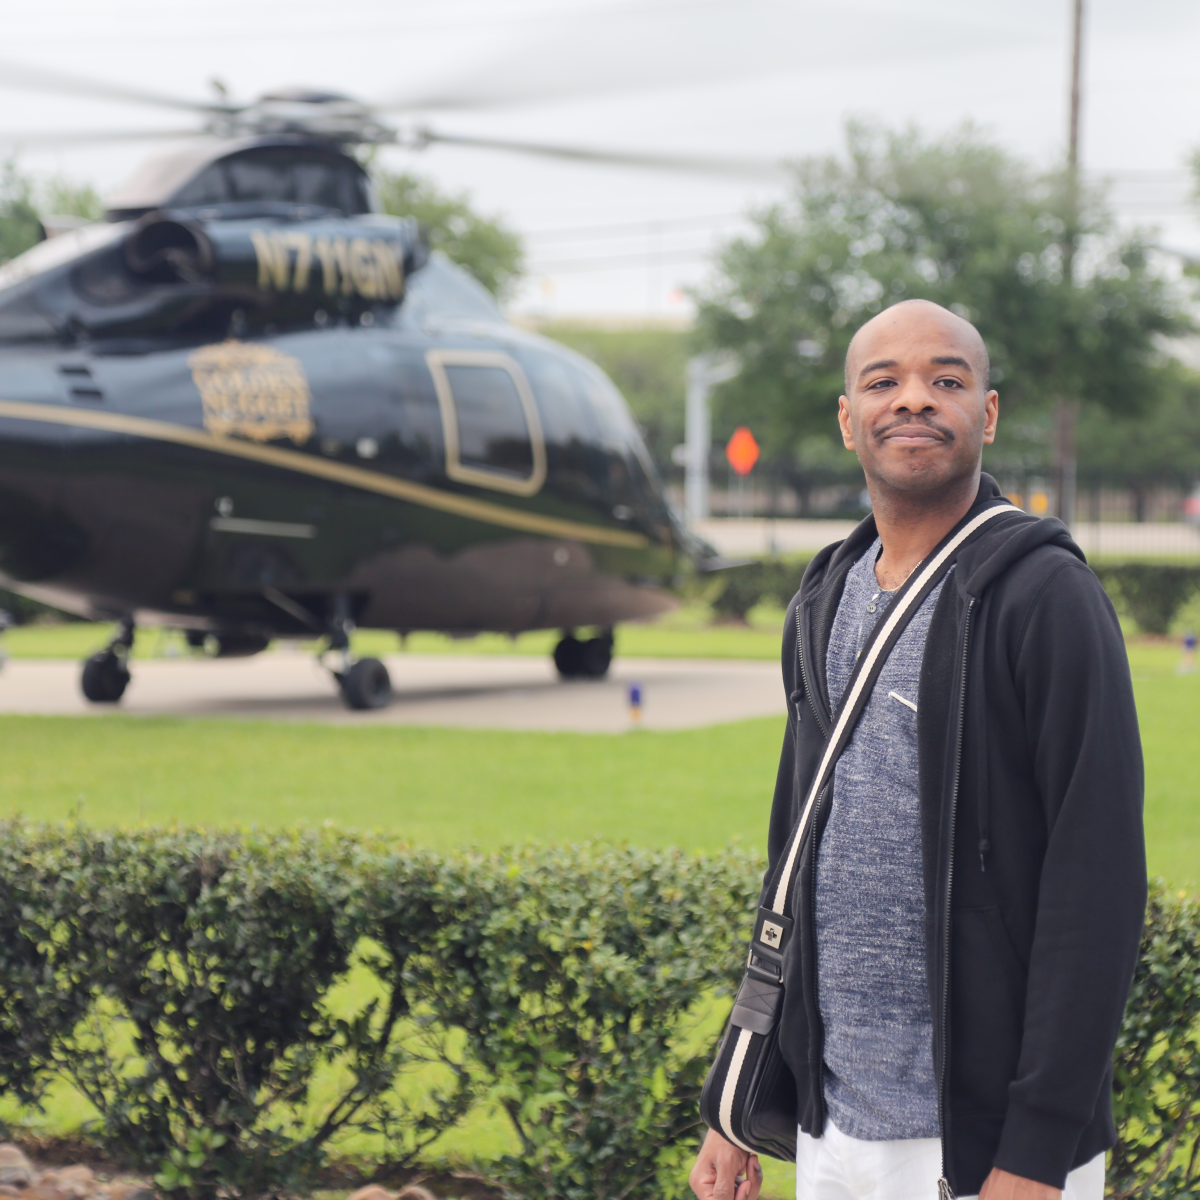 Stephen Wiltshire, Fertitta helicopter